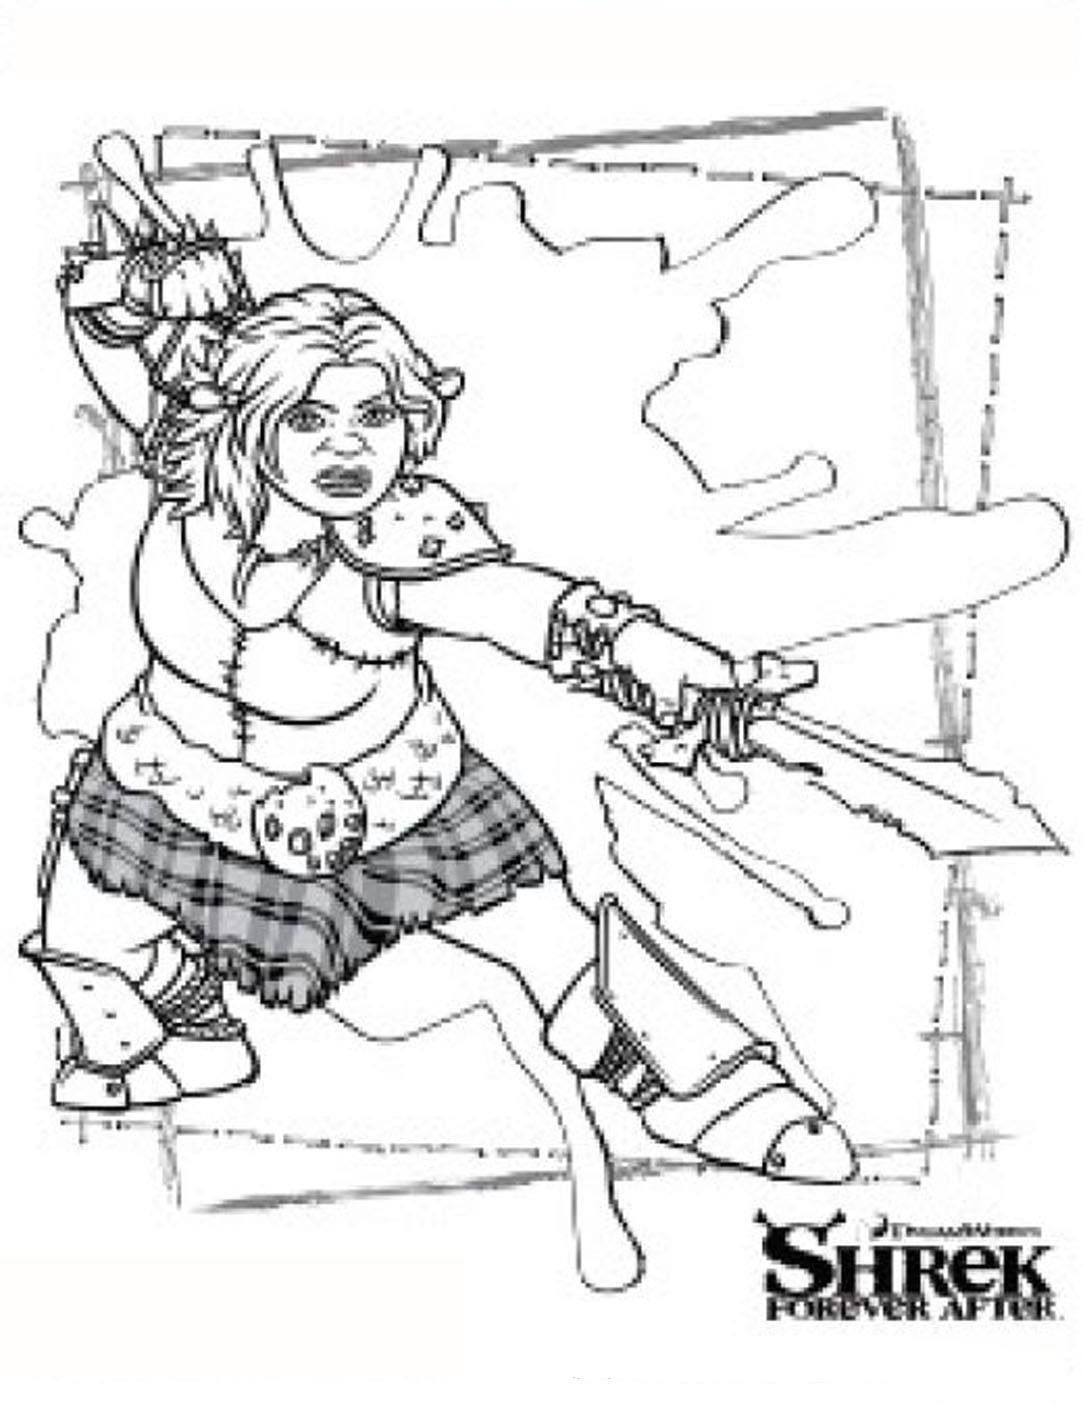 Shrek coloring page to print and color for free